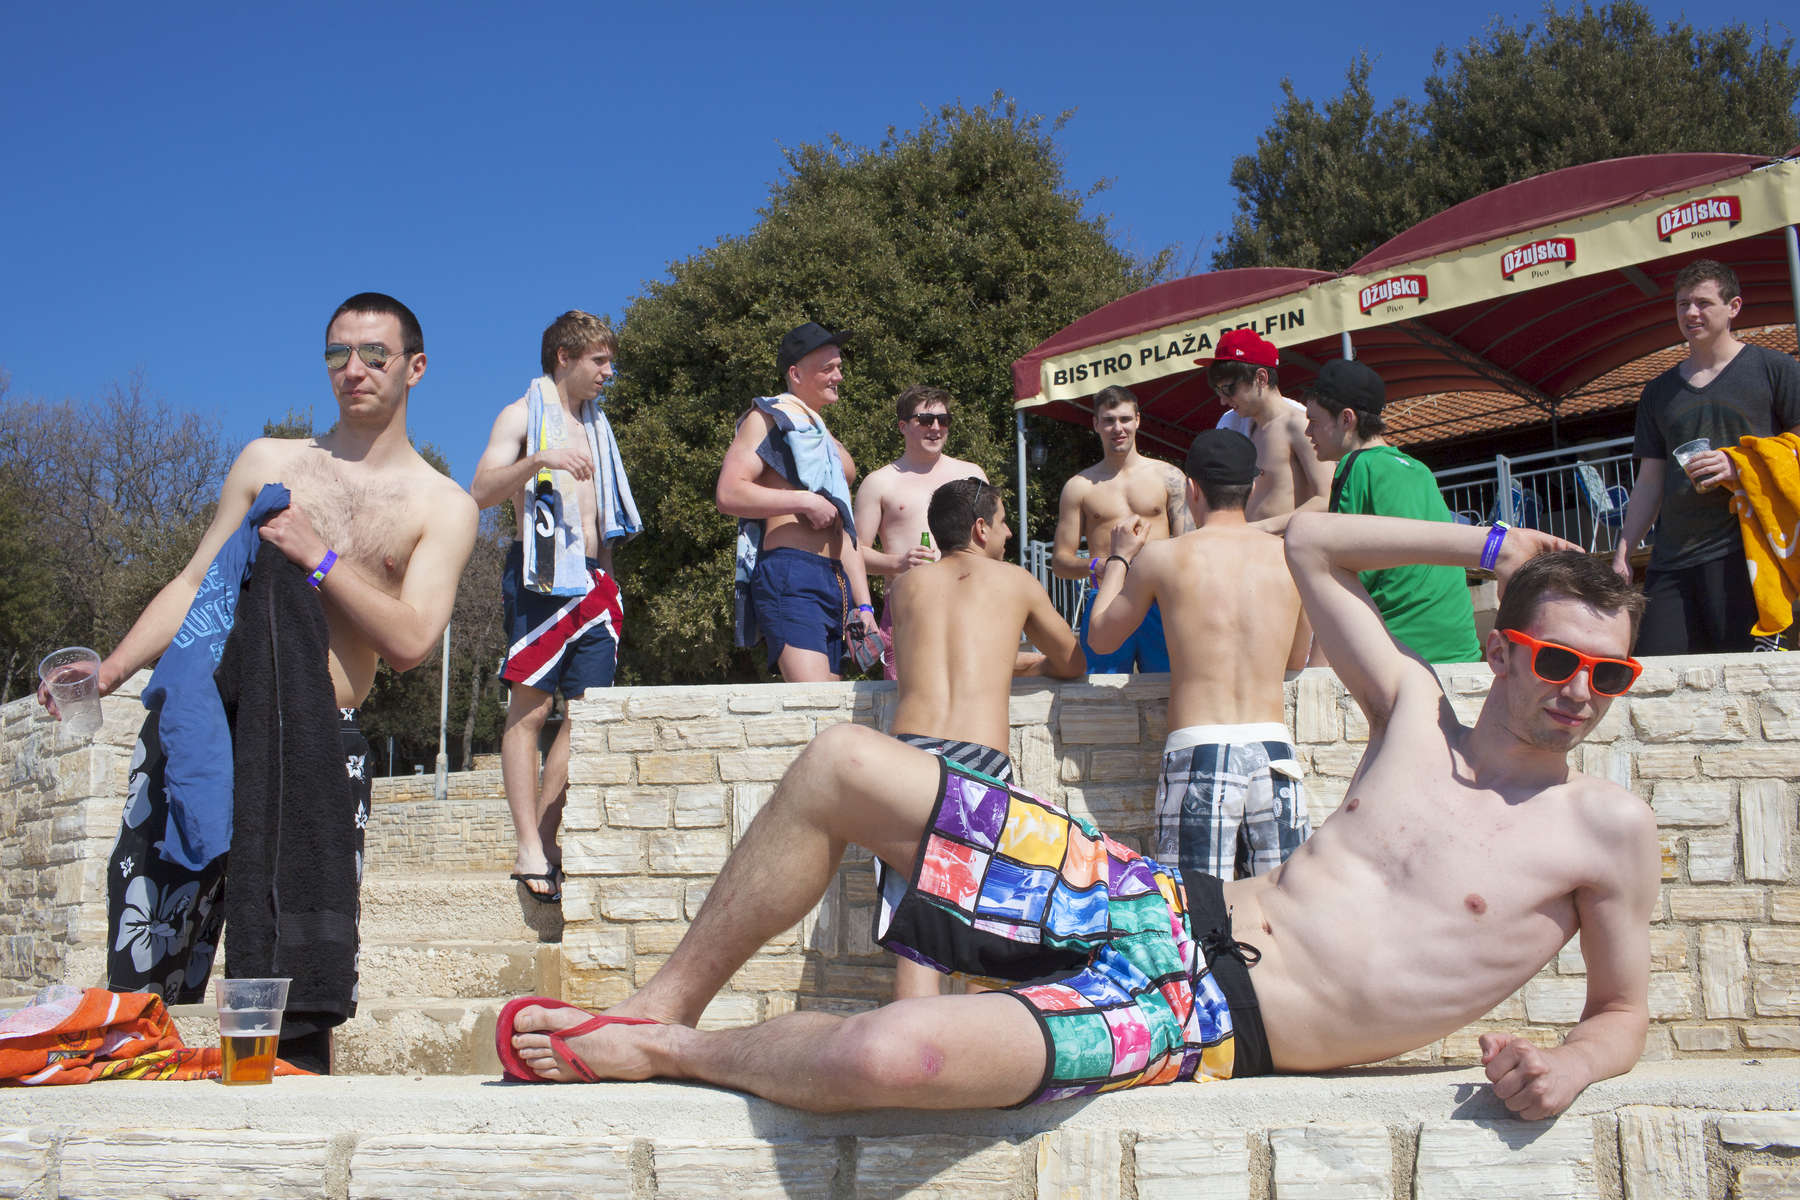 British University Students on the inaugural ILOVETOUR to the town of Porec in Croatia. The tour organizes various sports and themed events and club nights.